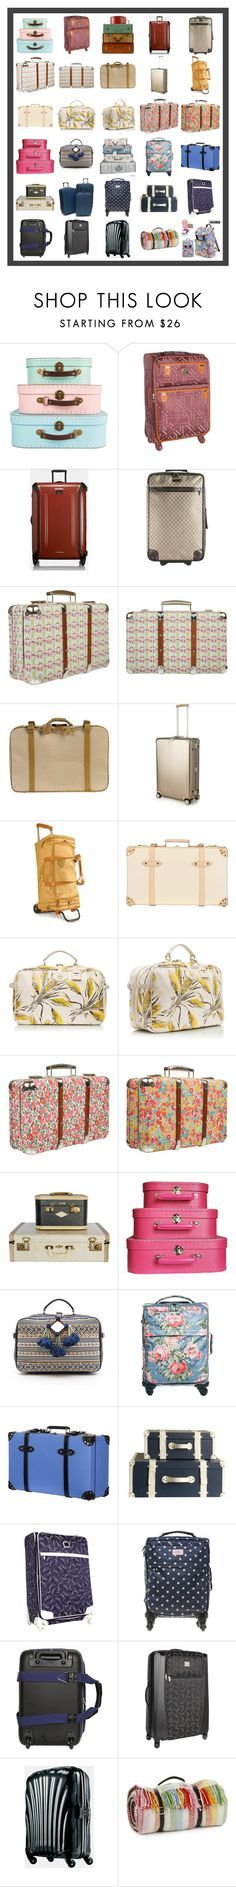 """Luggage Collection #1"" by franceseattle ❤ liked on Polyvore featuring interior, interiors, interior design, home, home decor, interior decorating, Diane Von Furstenberg, Tumi, Gucci and Liberty"